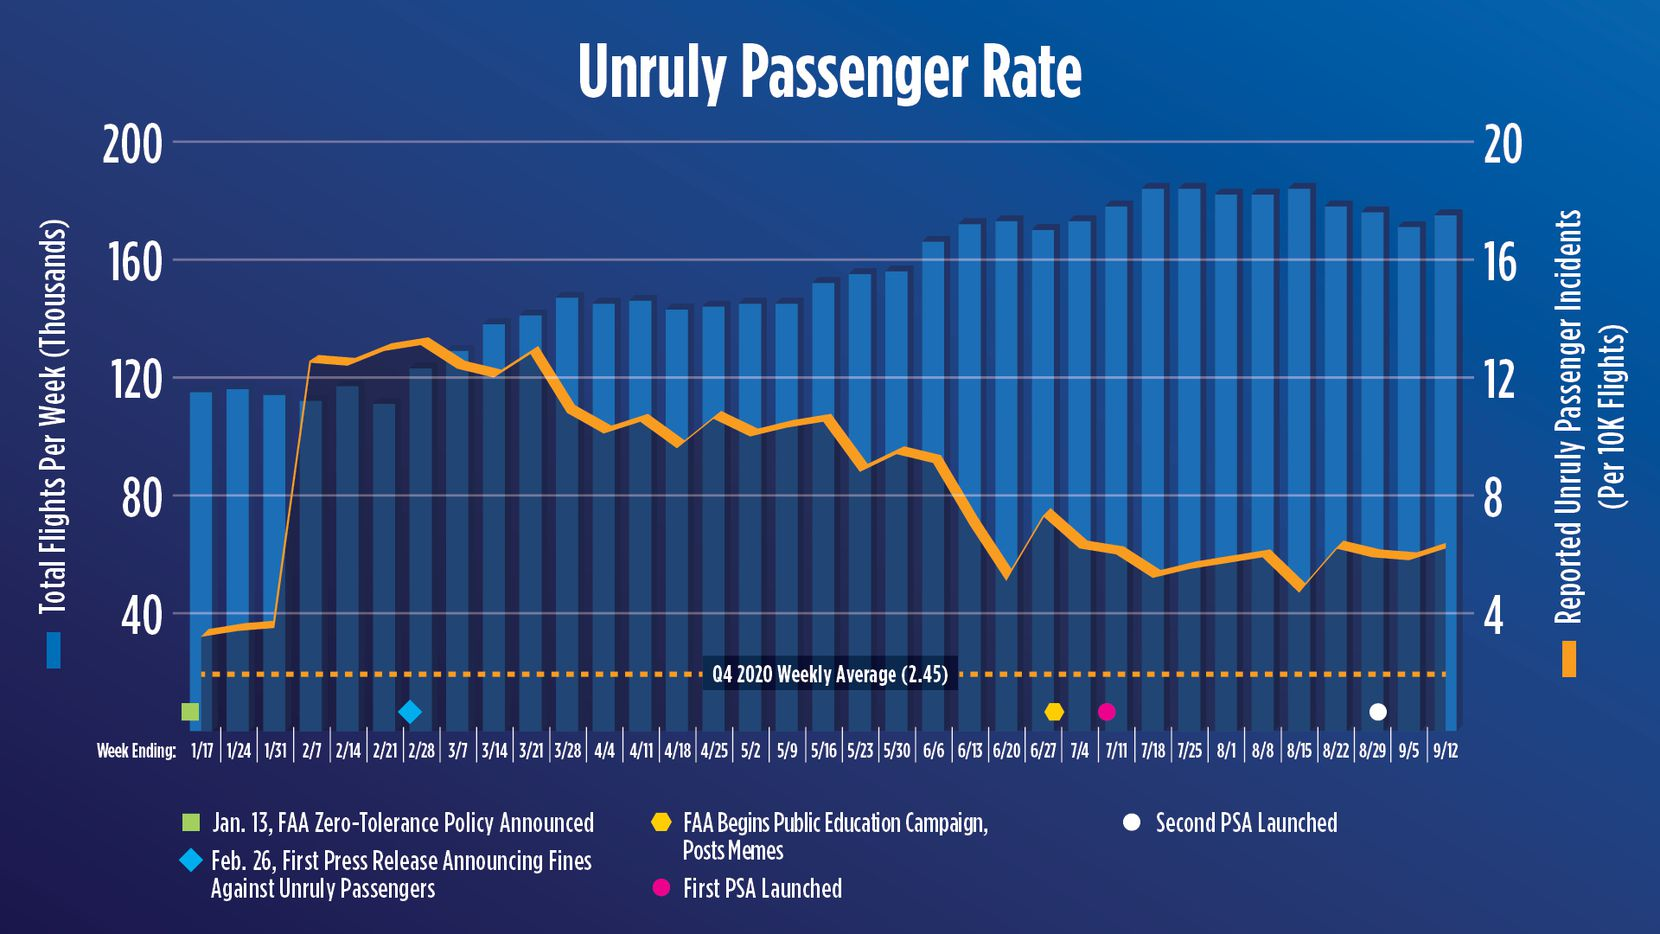 A chart from the FAA showing that the number of unruly passenger reports has dropped since early in 2021, but is still higher than last year.